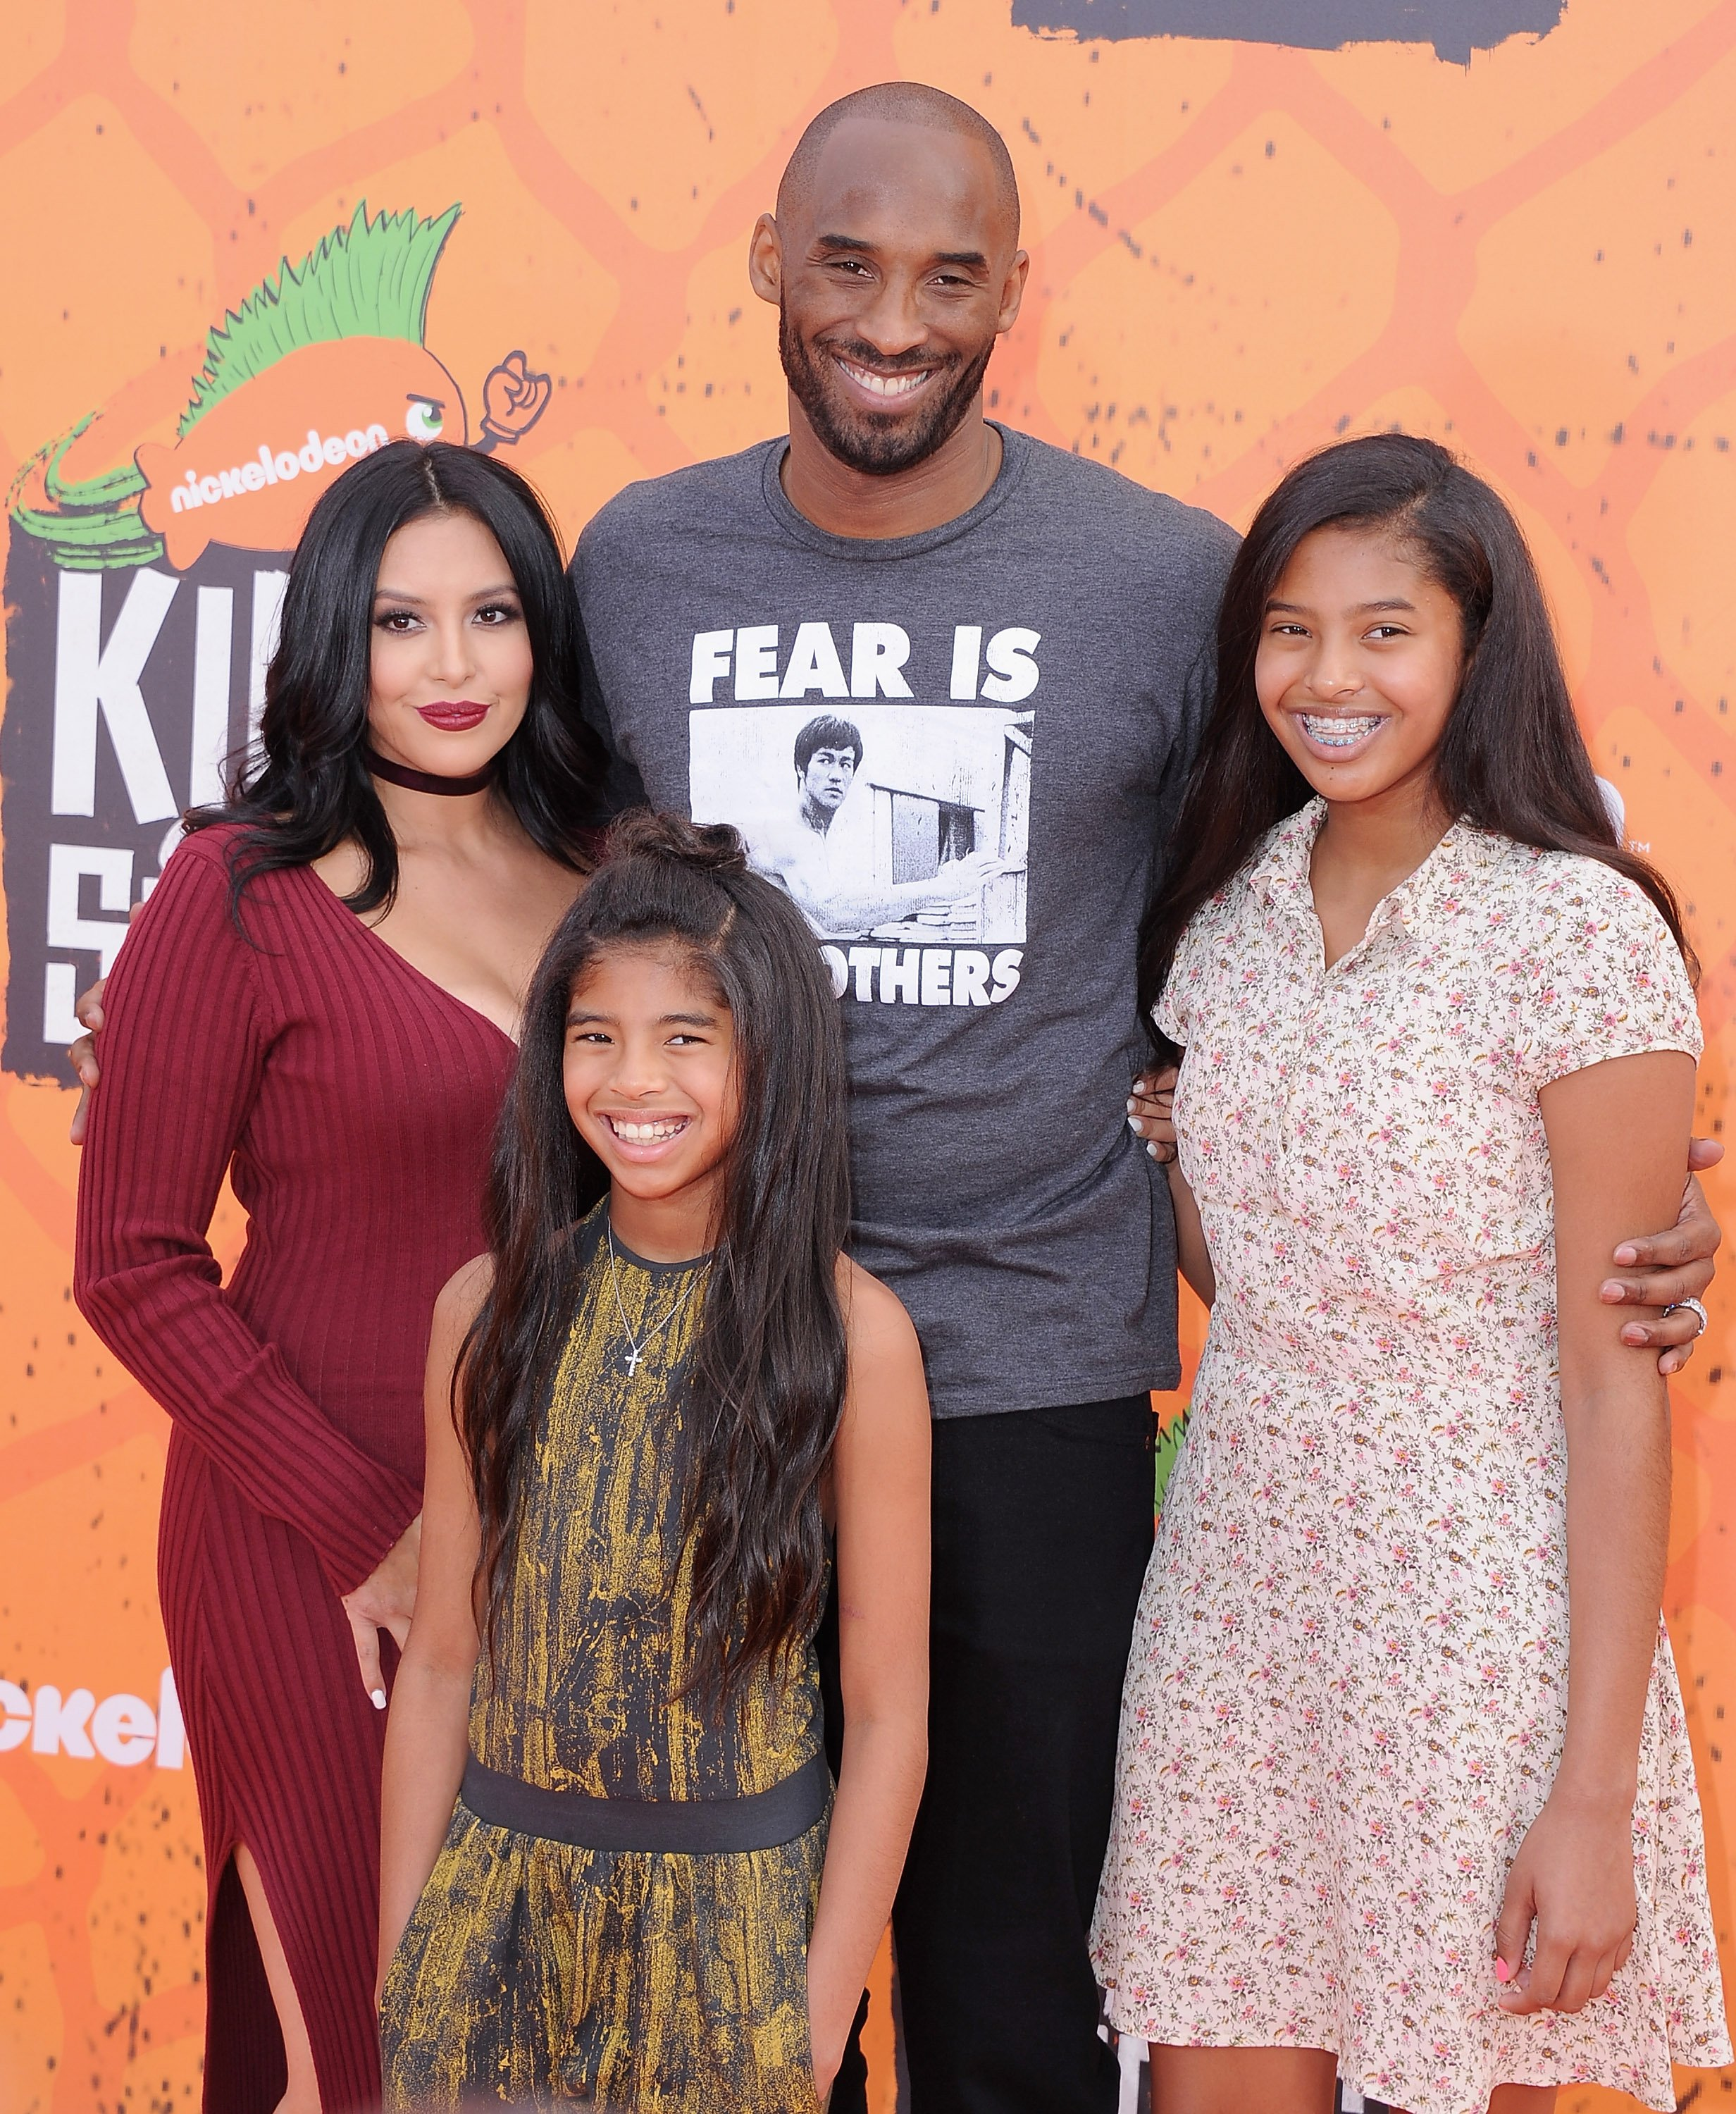 Kobe Bryant, Vanessa Laine Bryant, Gianna Maria-Onore Bryant, and Natalia Diamante Bryant arrive at Nickelodeon Kids' Choice Sports Awards 2016 on July 14, 2016, in Westwood, California. | Source: Getty Images.